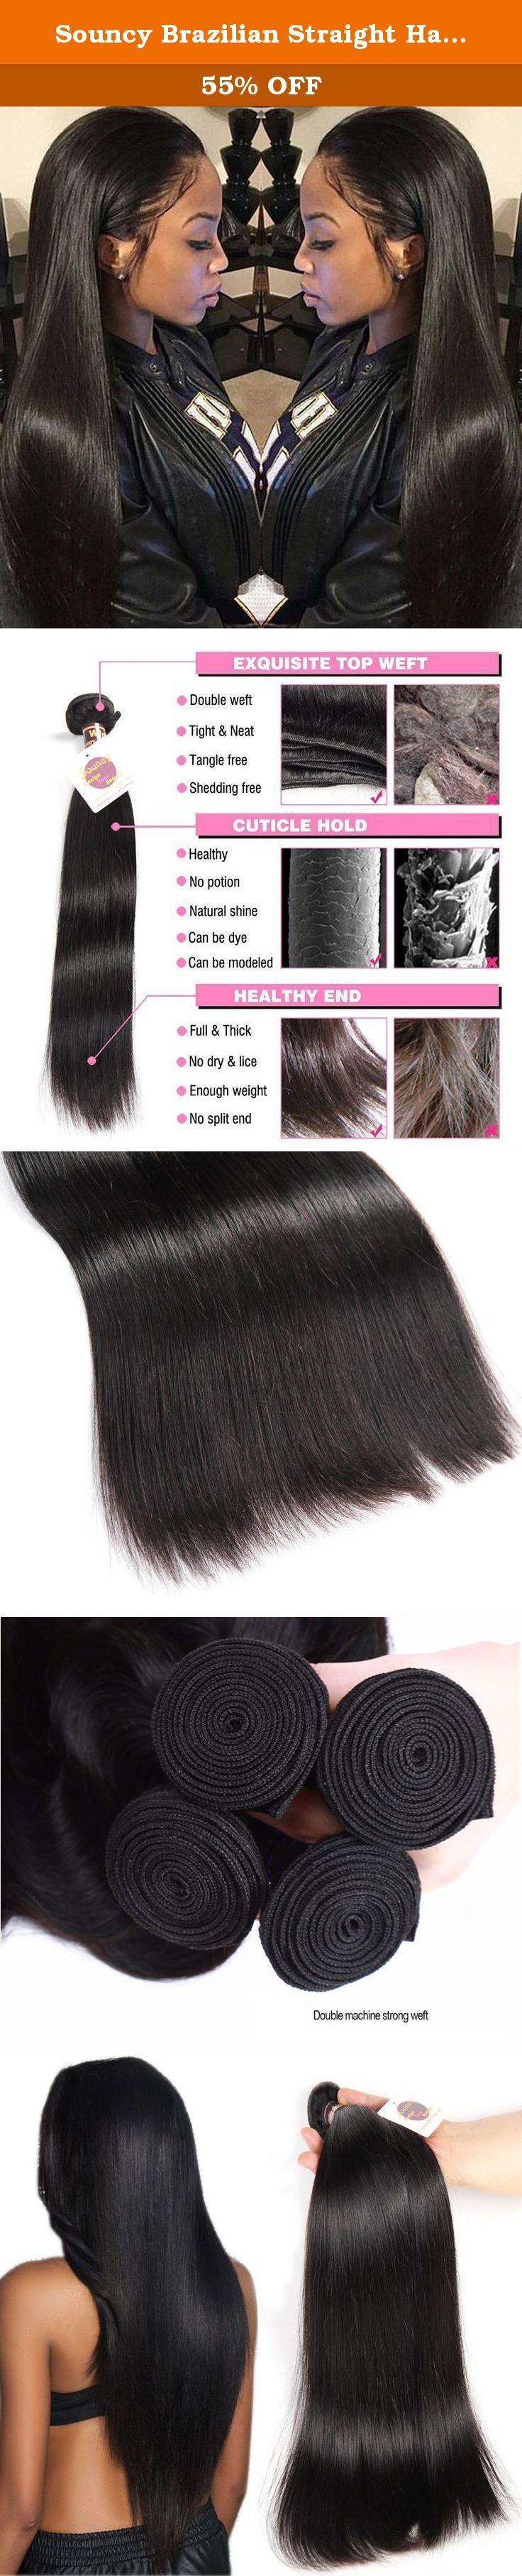 Souncy Brazilian Straight Hair 7A Unprocessed Virgin Brazilian Hair 3 Bundles, 100% Remy Human Hair Weave Extensions Natural Black Color (16 18 20inches). Brand Name: Souncy Hair Hair Material: 100% Unprocessed Virgin Hair, Brazilian Human Hair Material Grade: 7A Grade Brazilian virgin human hair Hair Color: Natural Black Hair Color Hair Style: Brazilian Silky Straight Items per Package:Brazilian Hair 3 Bundles Hair Length: 8, 10, 12, 14, 16, 18, 20, 22, 24, 26 inches,Any Mix Length...